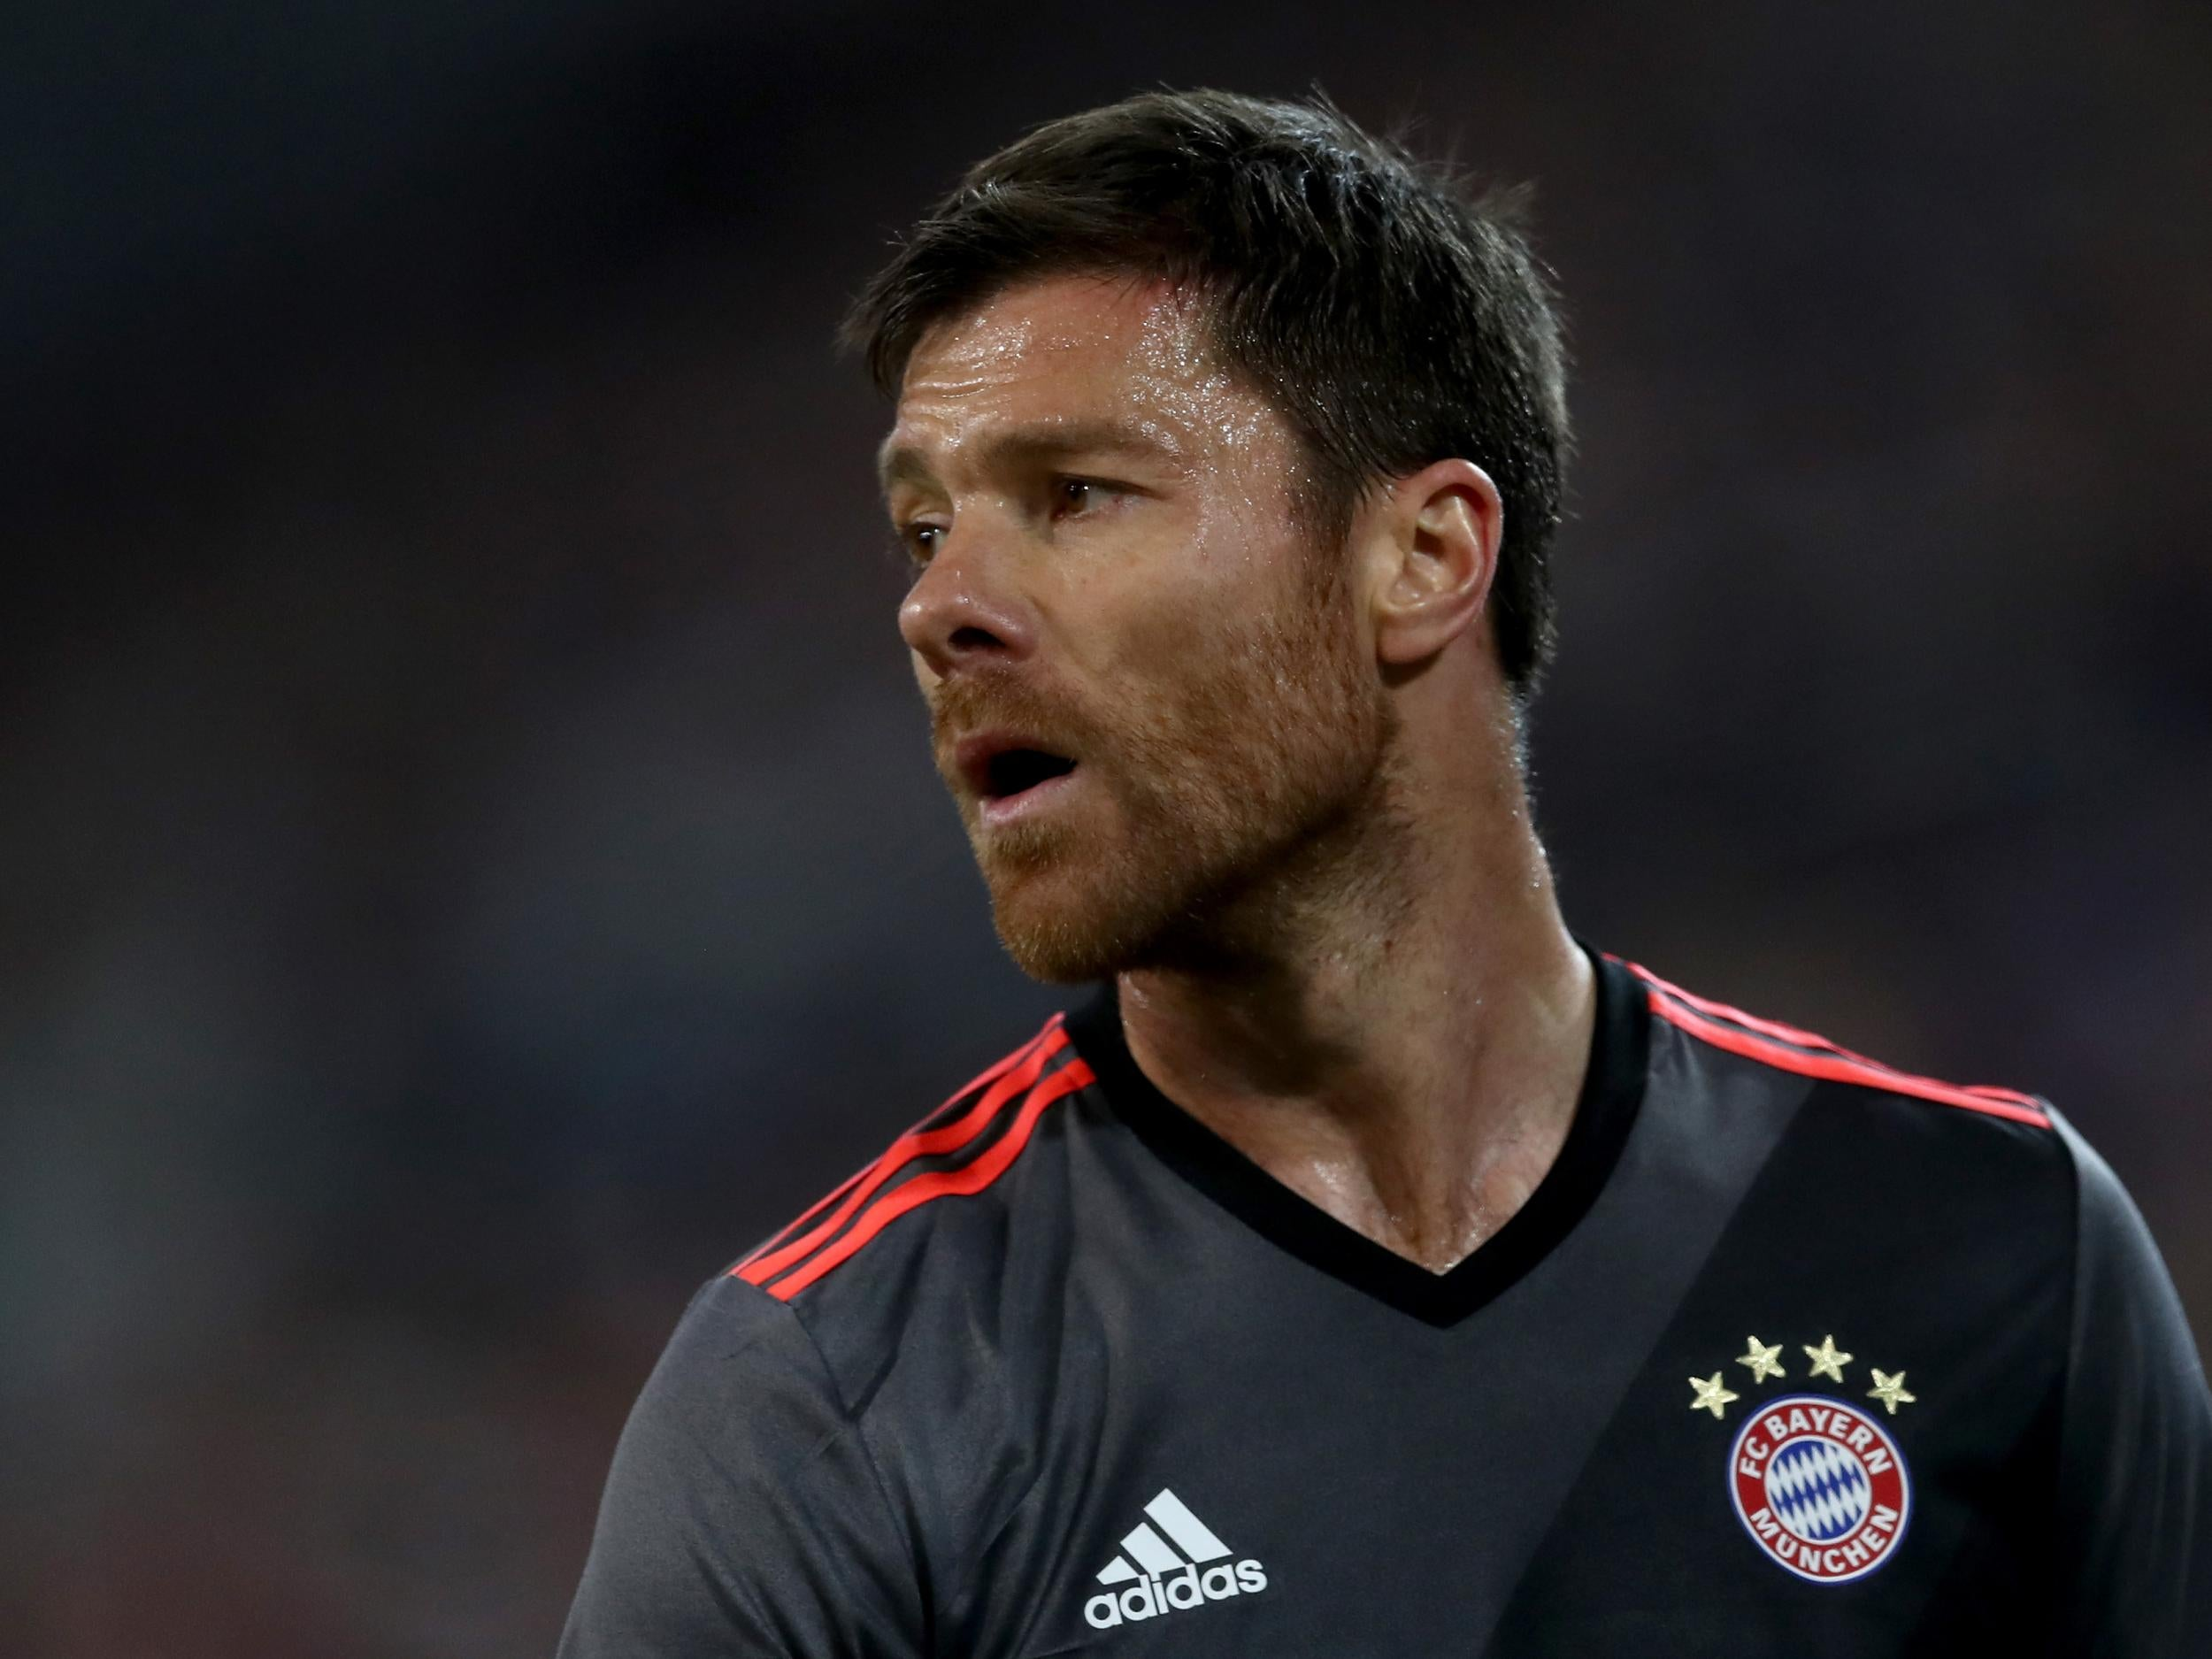 Former Liverpool midfielder Xabi Alonso to retire from football